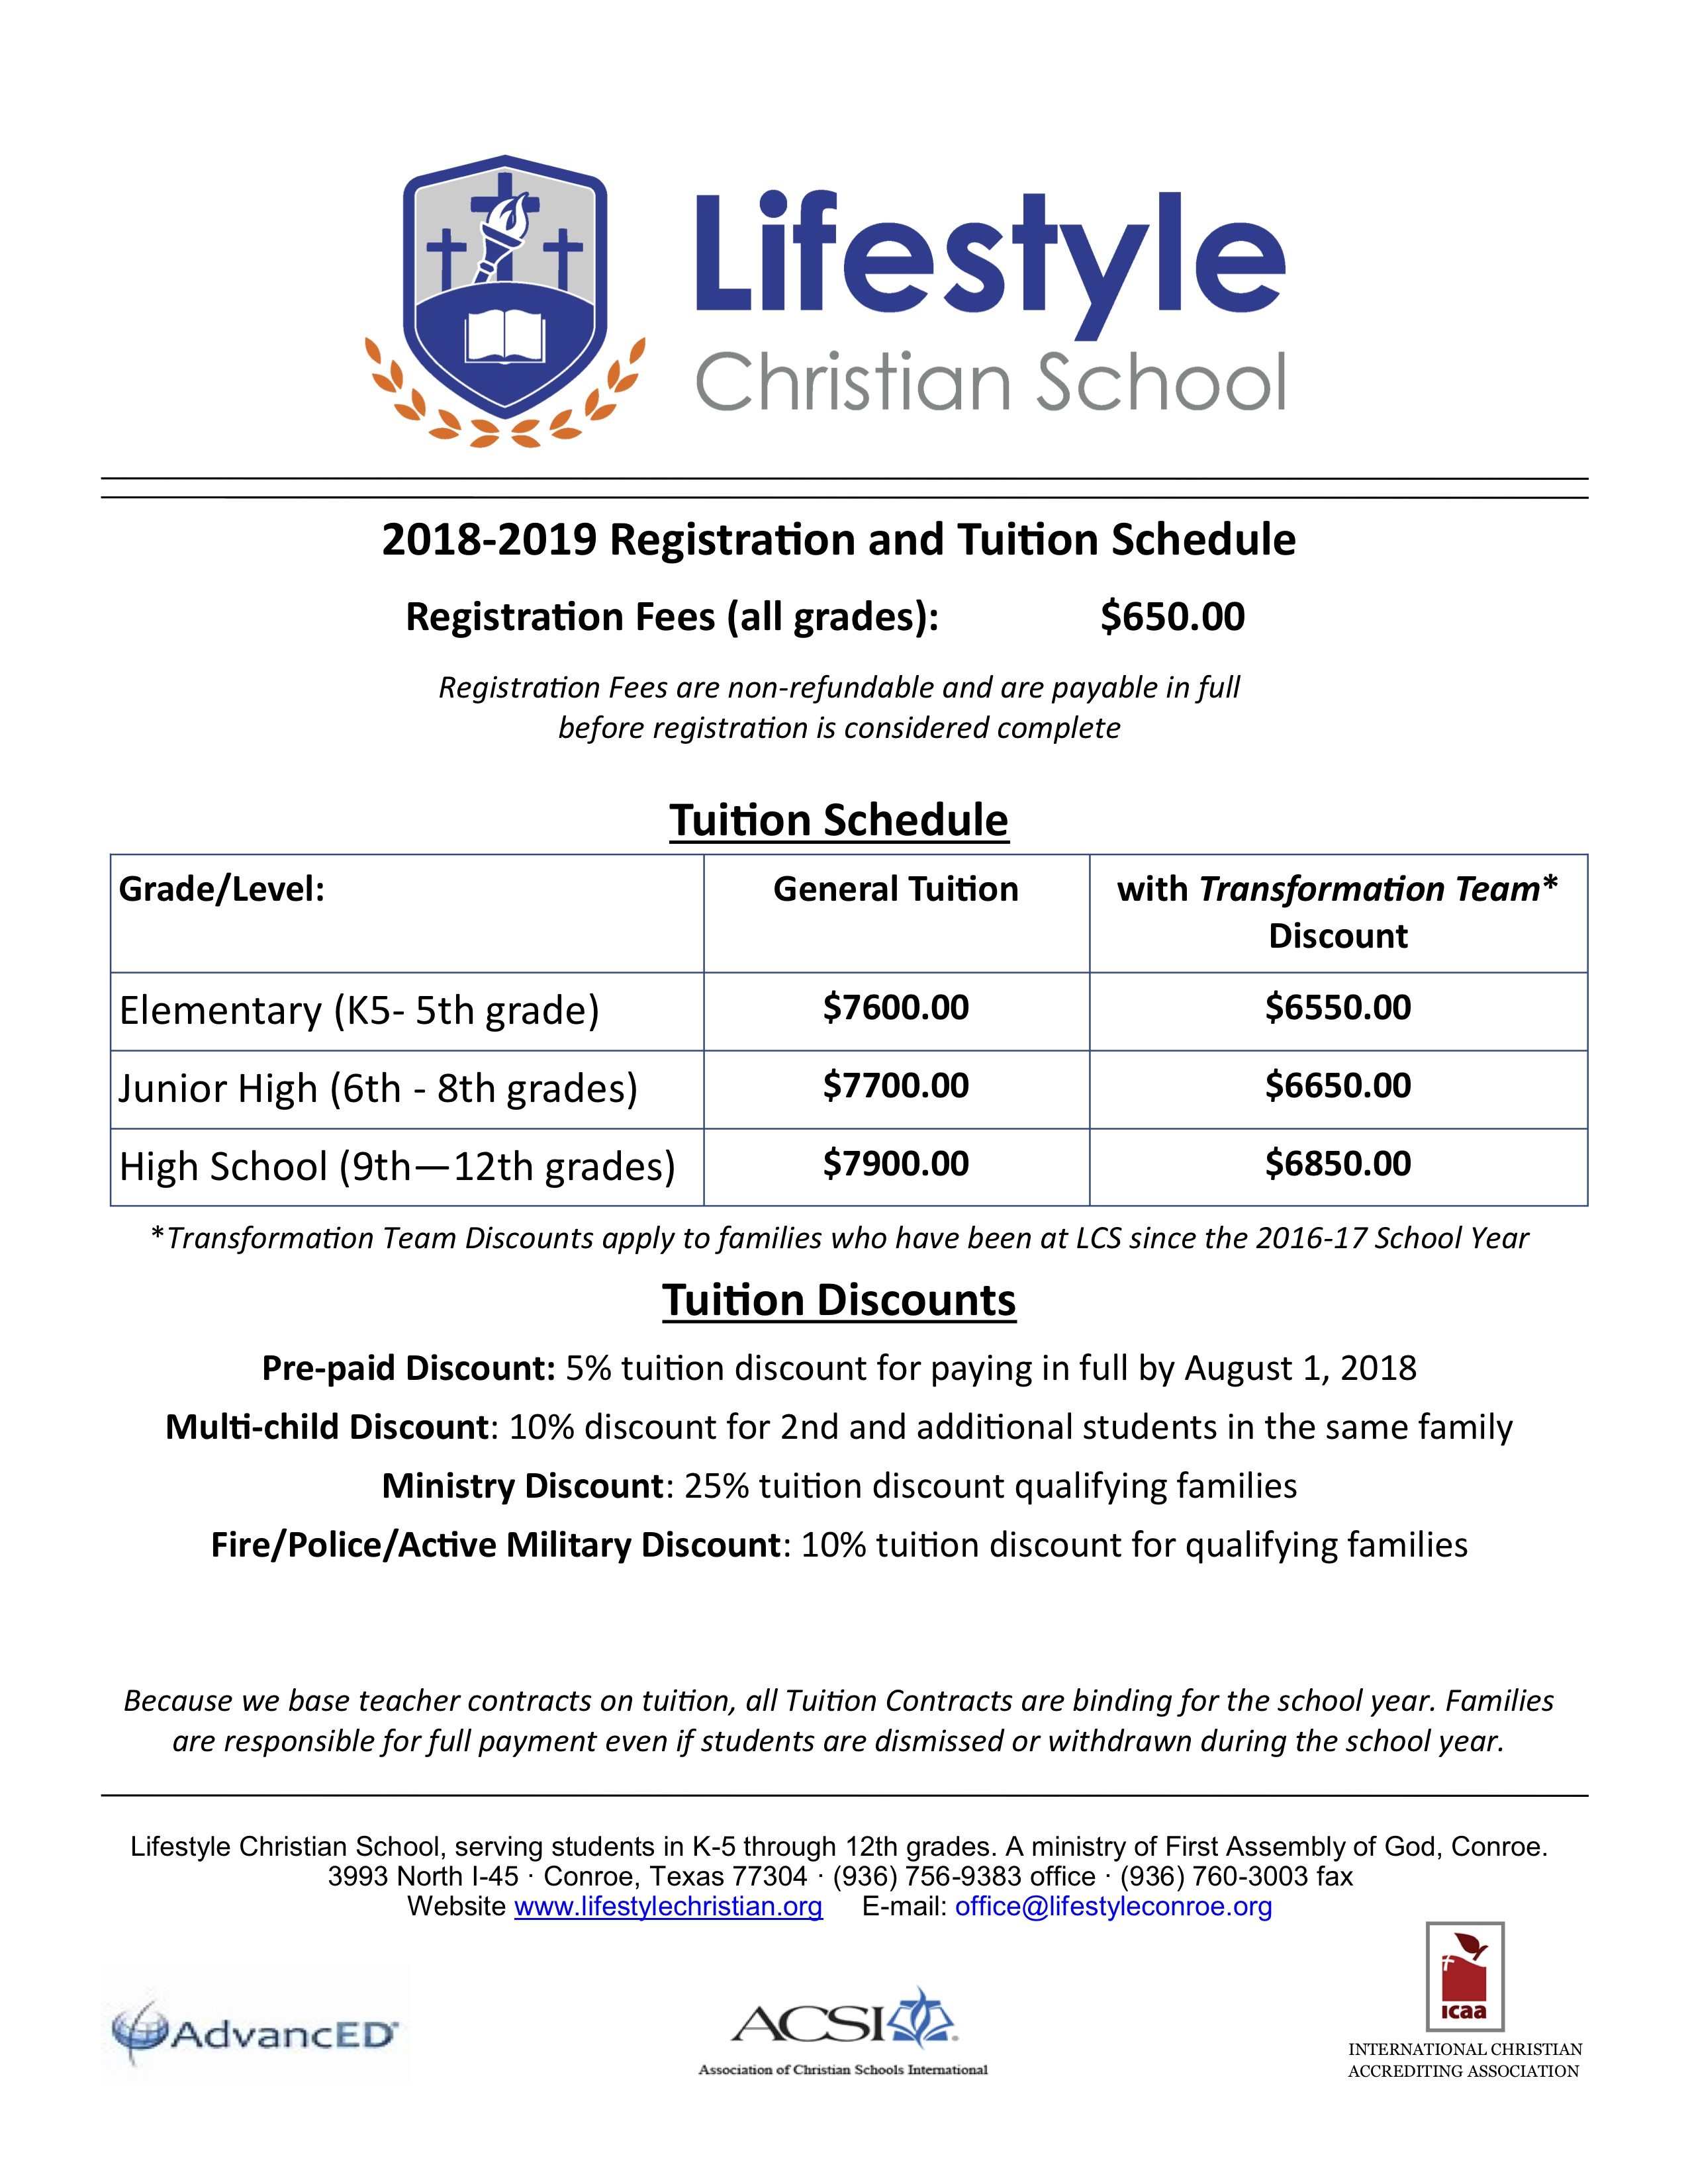 LCS Tuition & Fee Schedule 2018-19